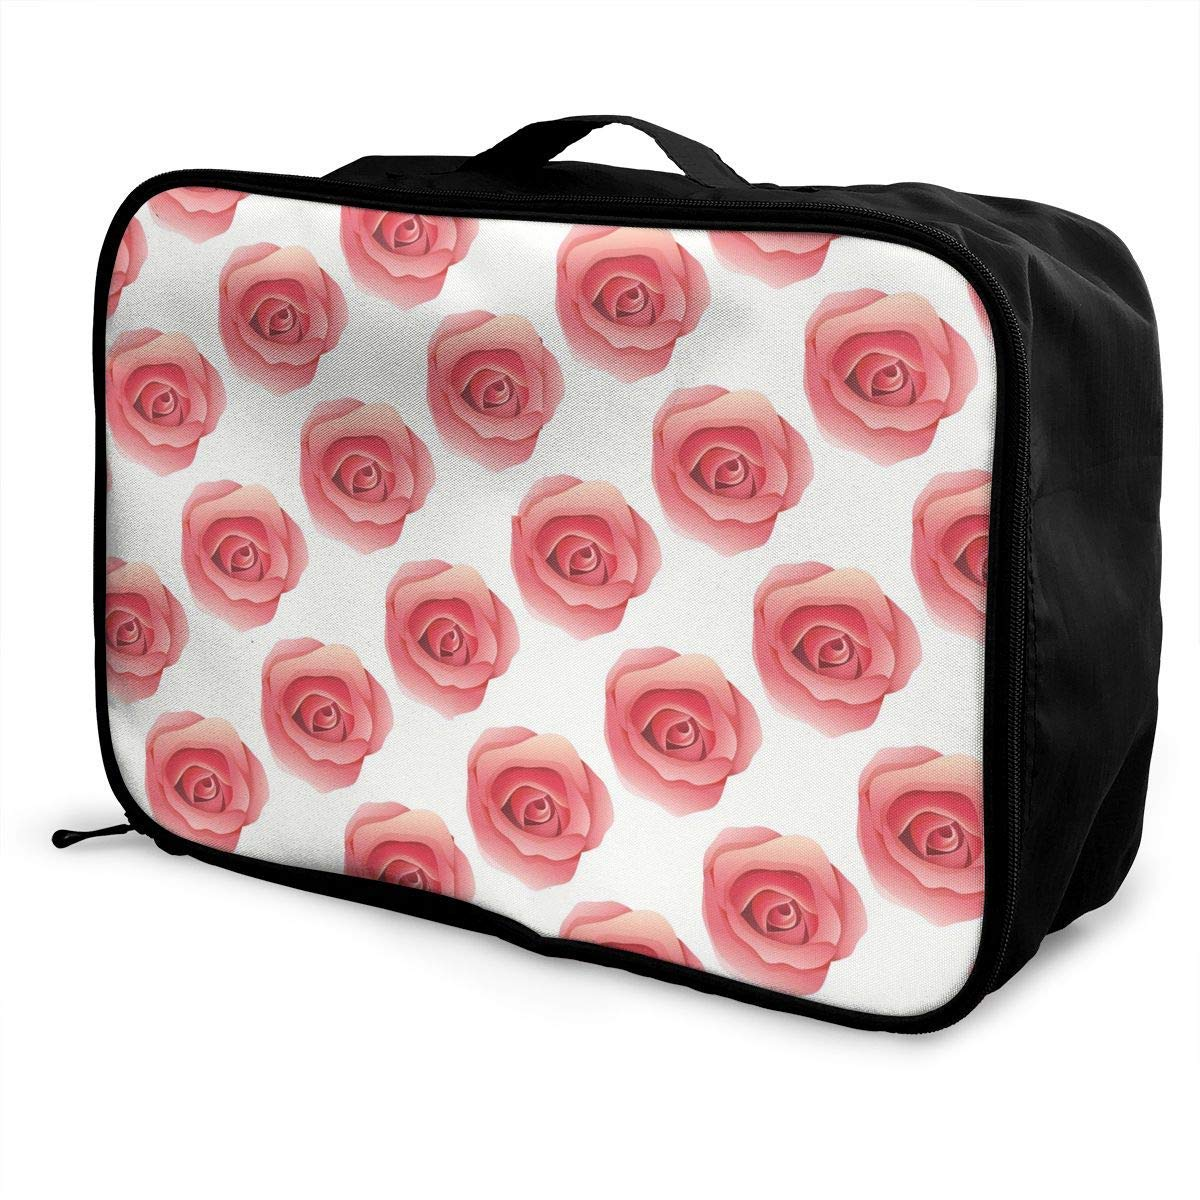 Portable Luggage Duffel Bag Rose Travel Bags Carry-on In Trolley Handle